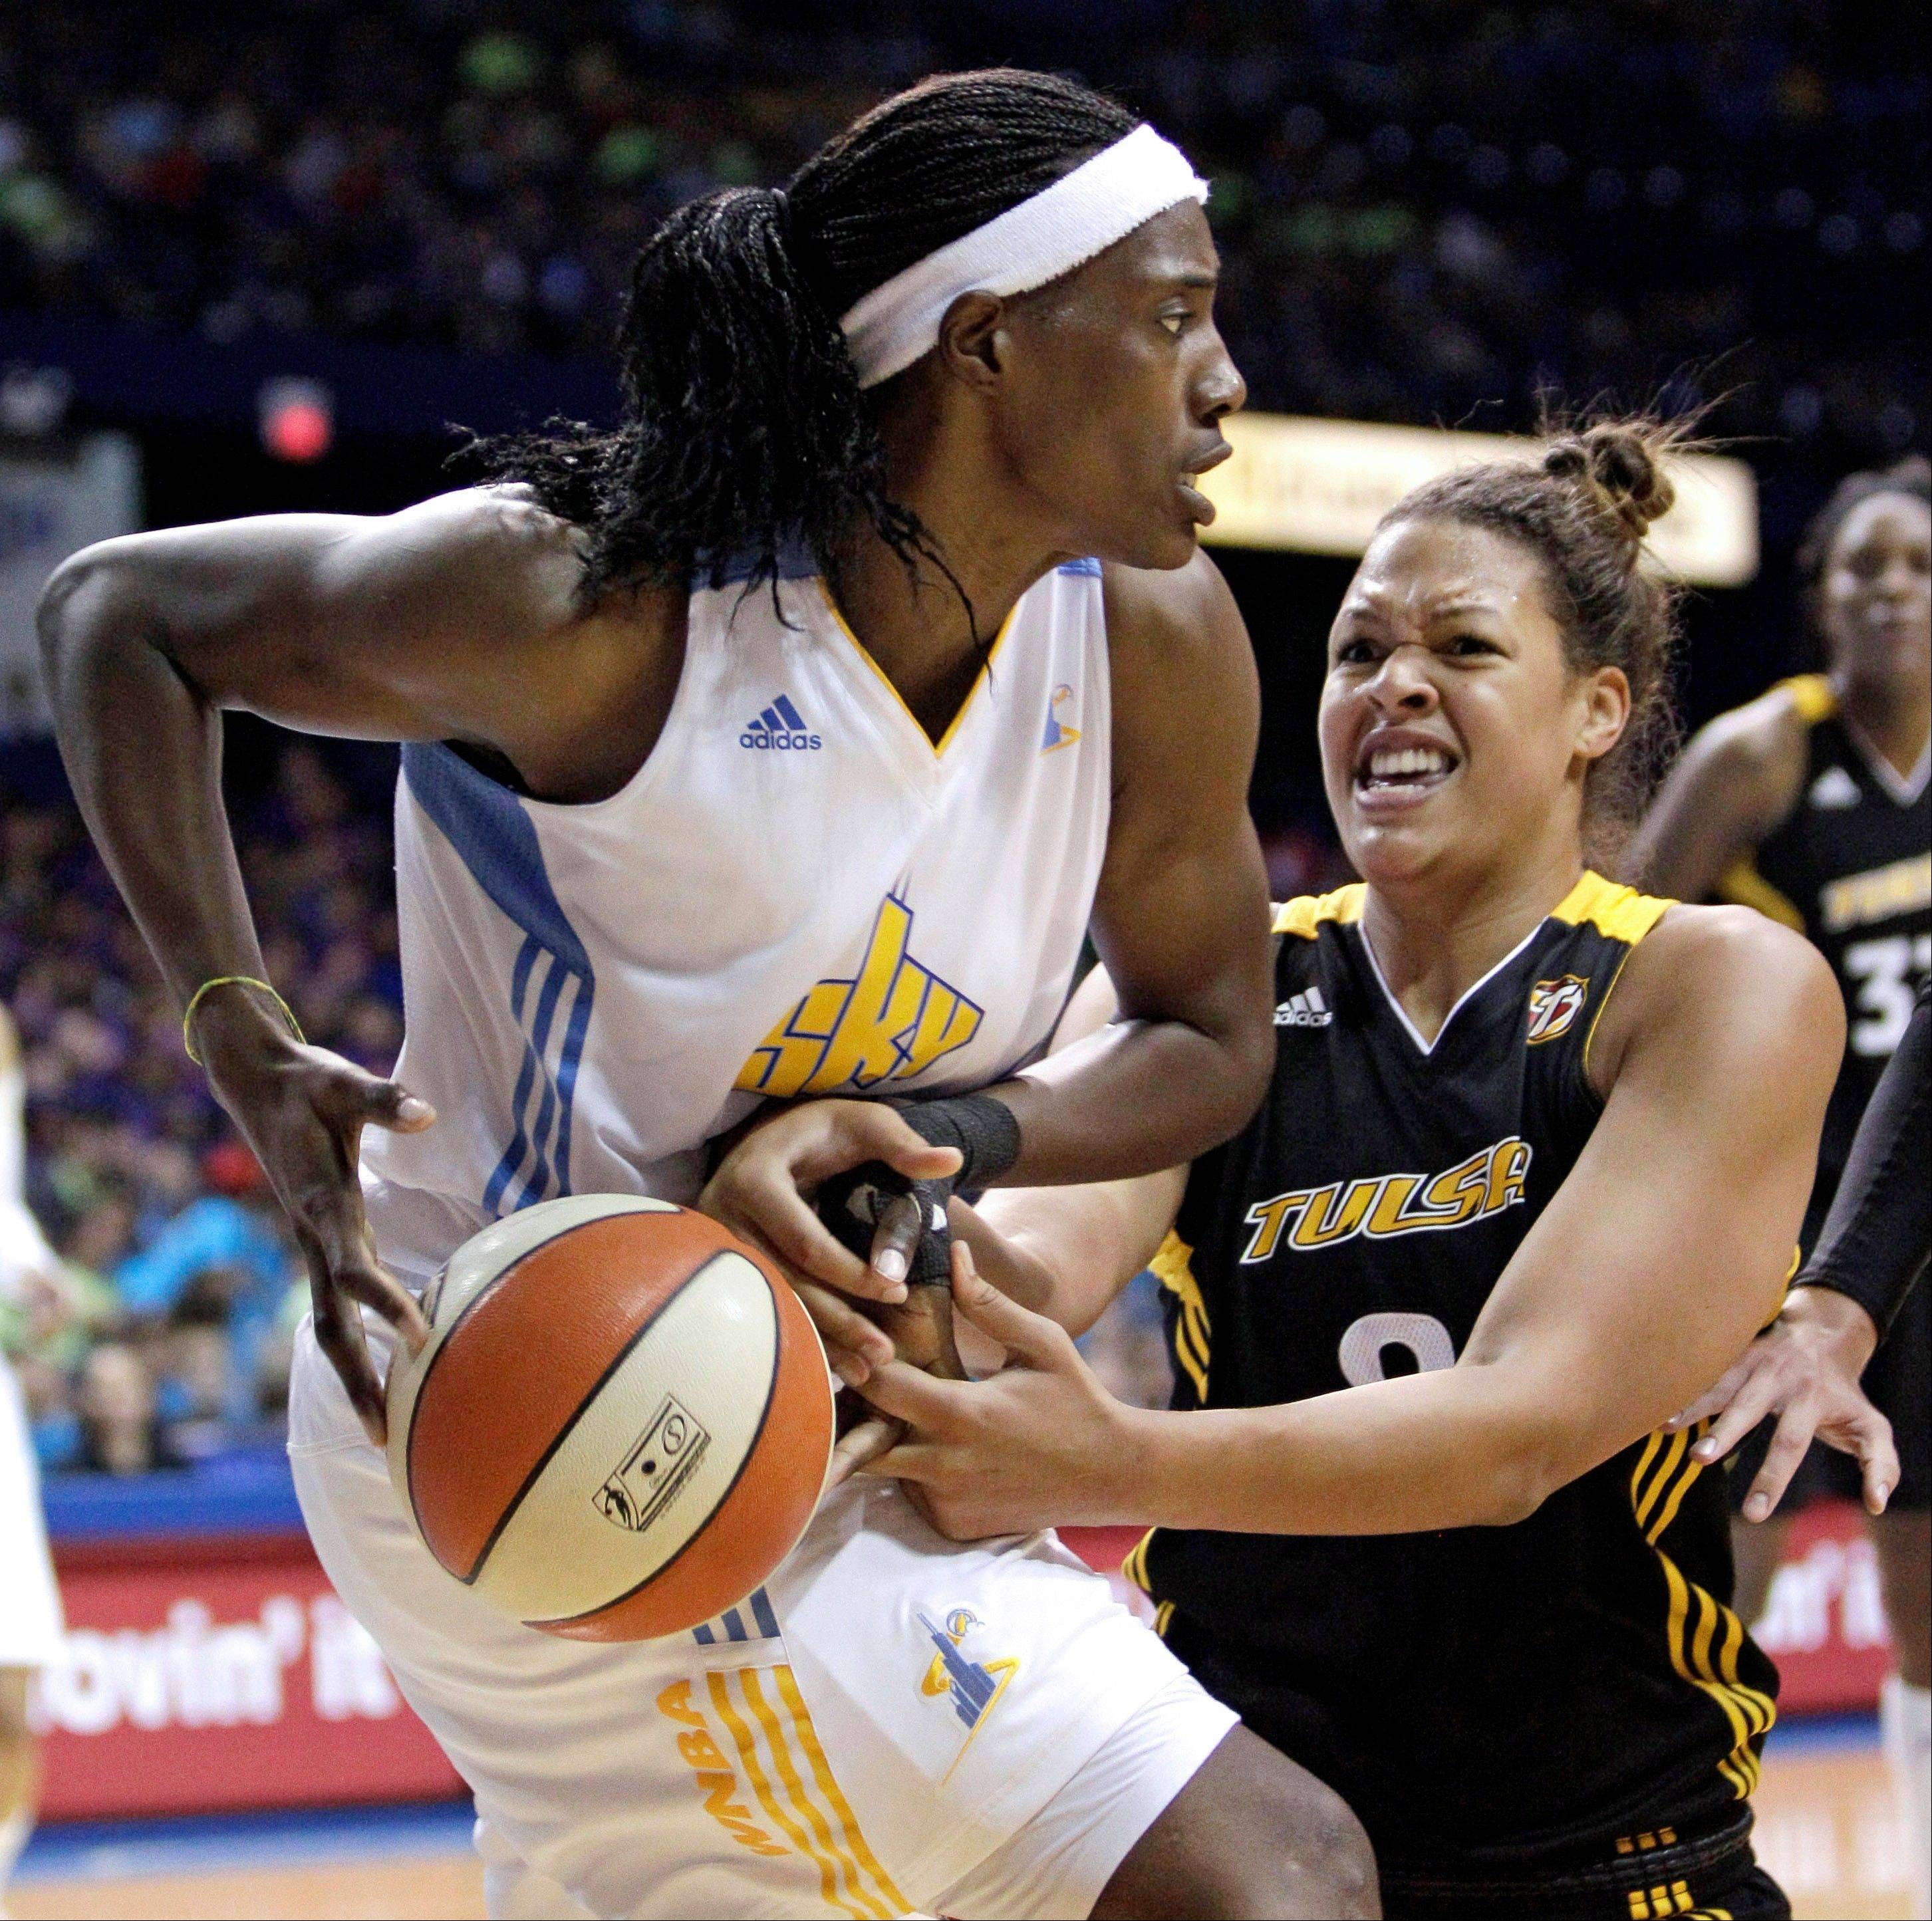 Chicago Sky's Sylvia Fowles, left, and Tulsa Shock's Elizabeth Cambage battle for a rebound during the second half of a WNBA basketball game on Wednesday, July 13, 2011, in Rosemont, Ill. The Sky won 72-54.